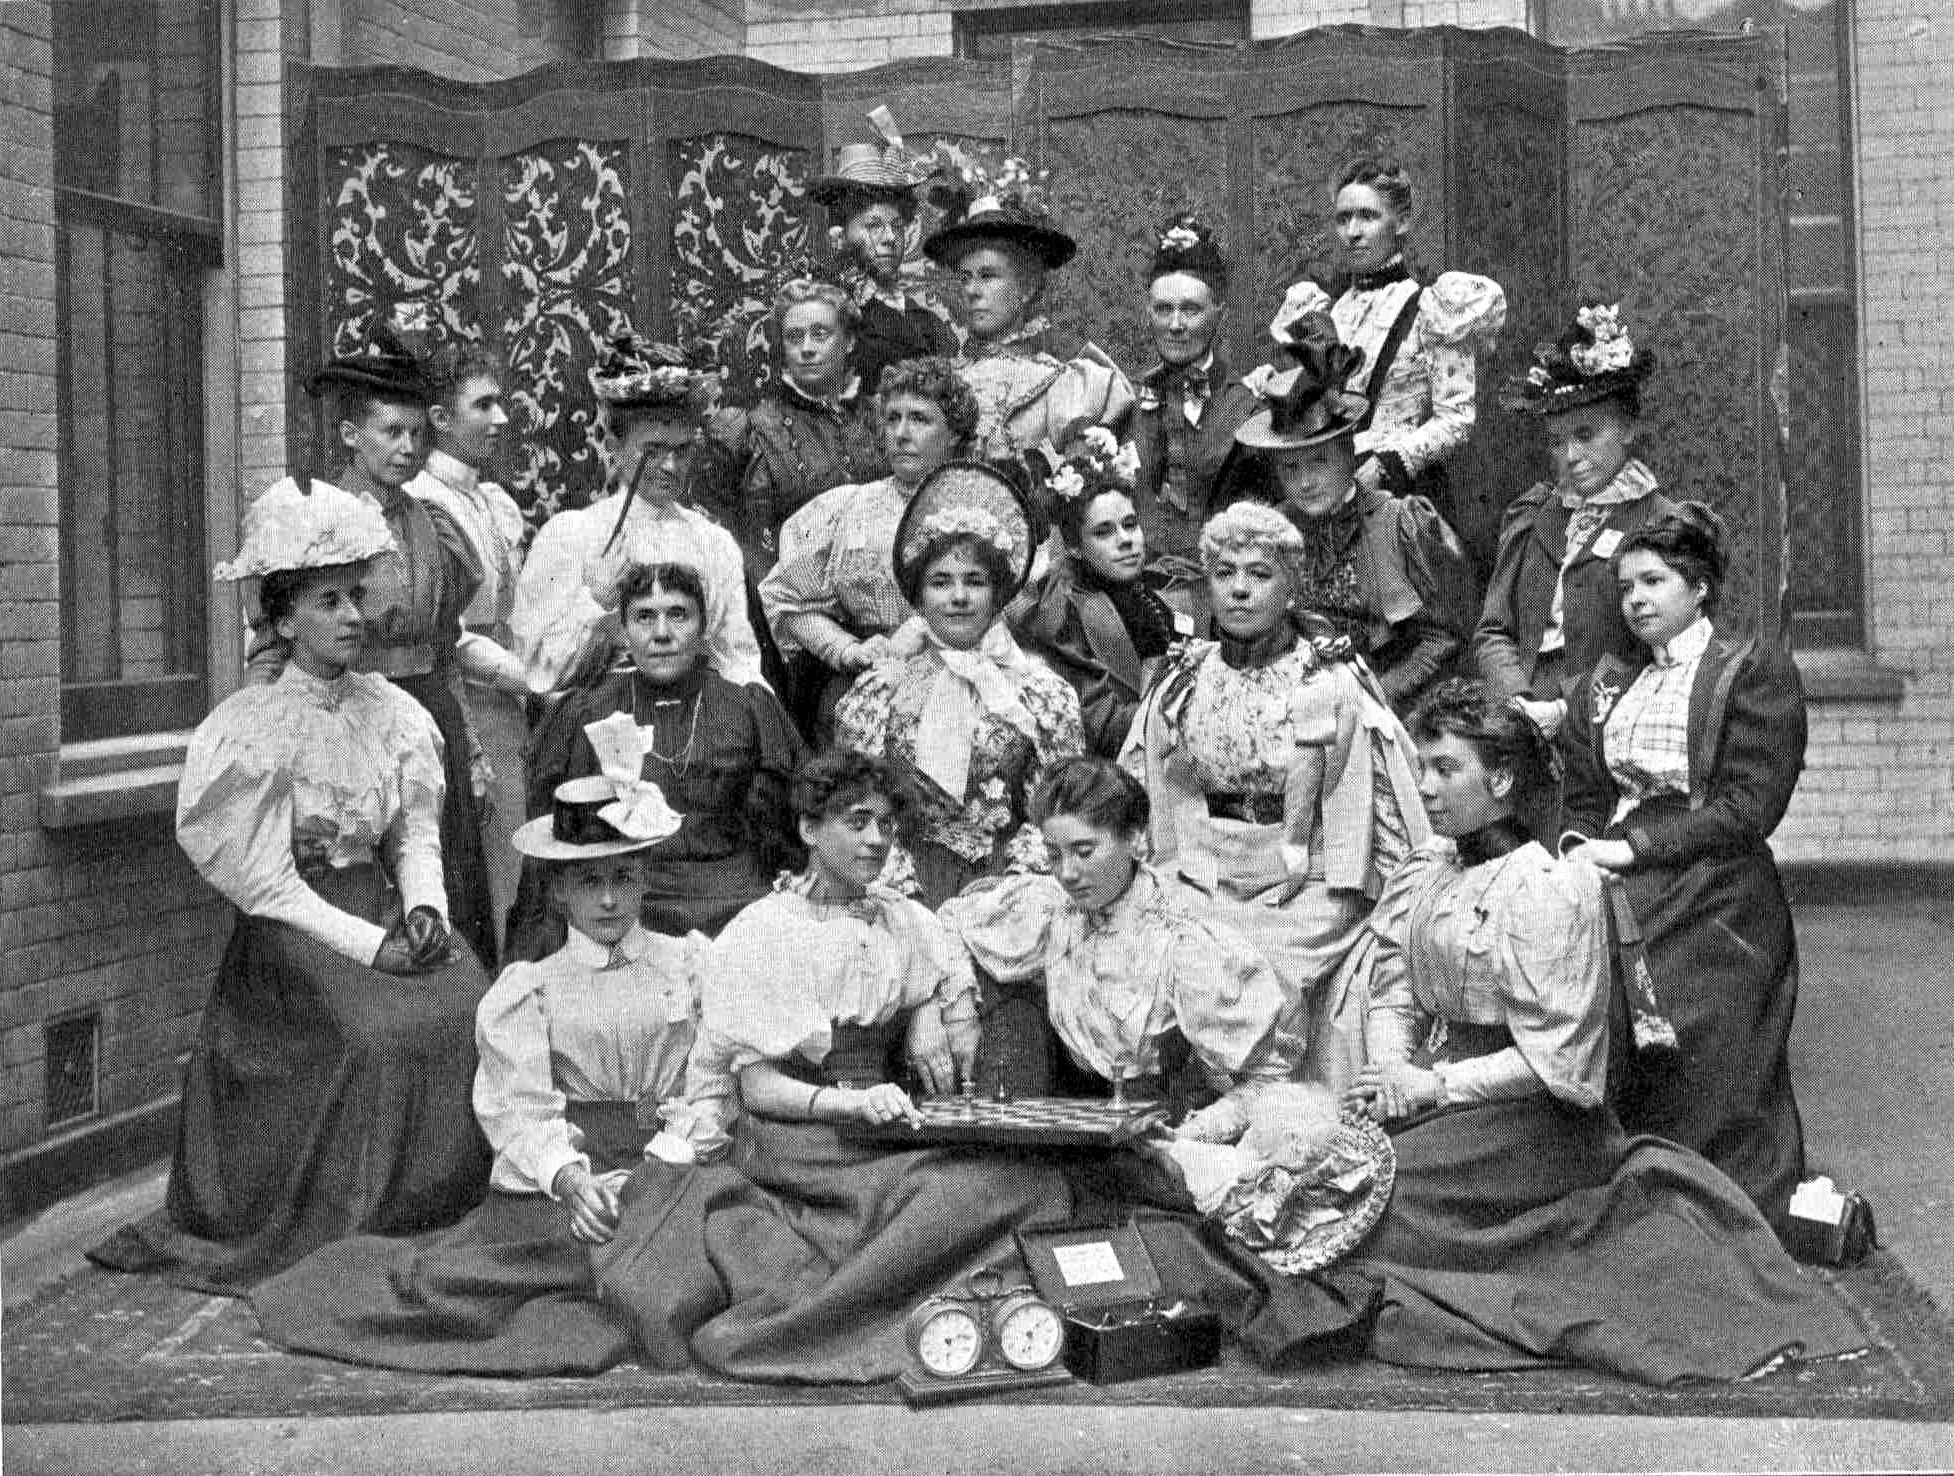 The first Ladies' International Chess Congress (1897) ( Wikipedia  | Public Domain)  Mary Rudge is seated on the far left of the second row. Lady Thomas and Louisa Fagan are the last two on the right of the third row.